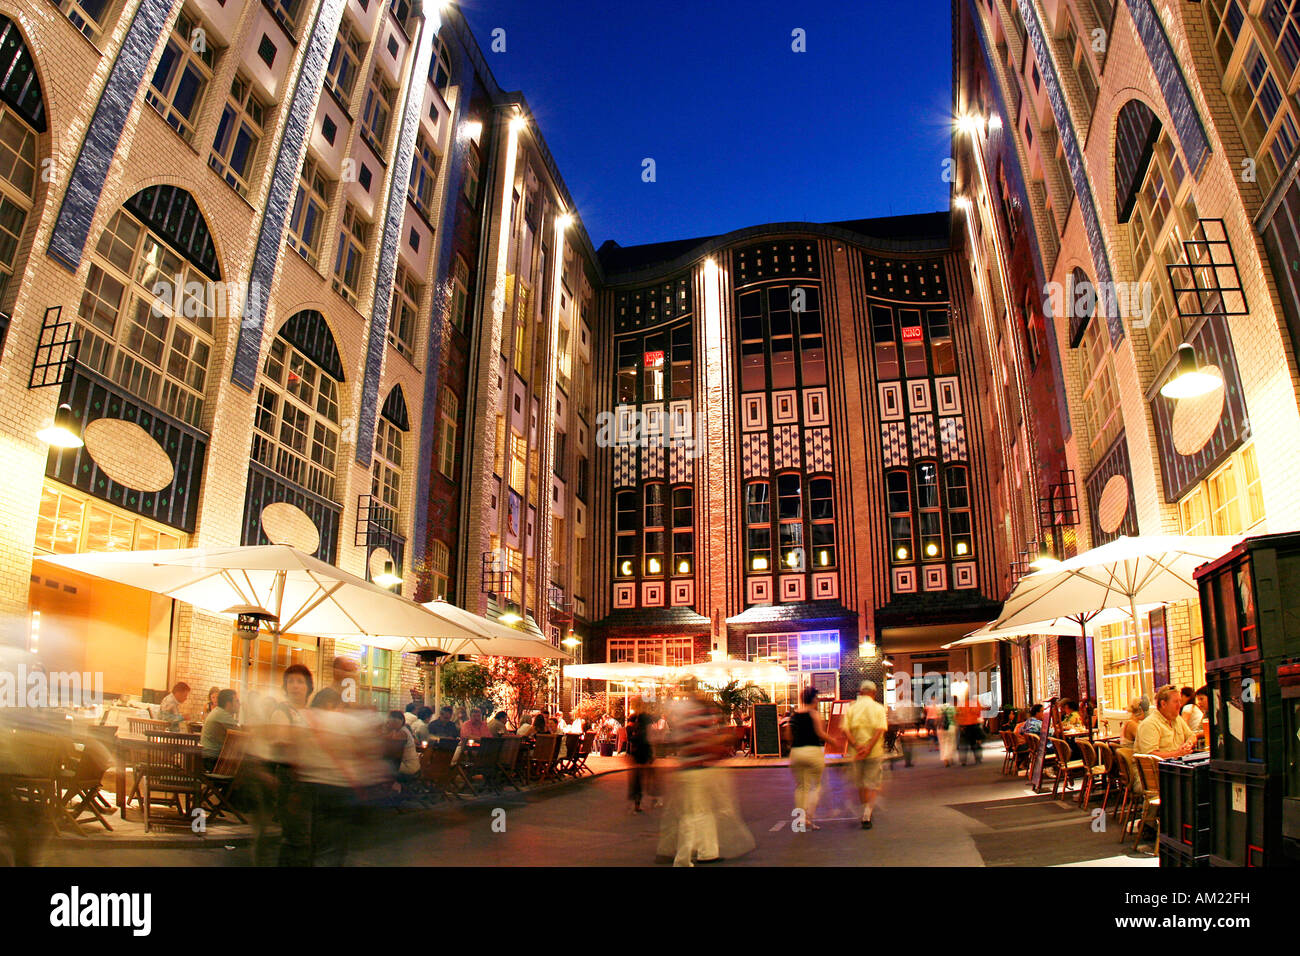 Fliesen Markt Berlin Hackescher Markt At Night, Berlin, Germany Stock Photo